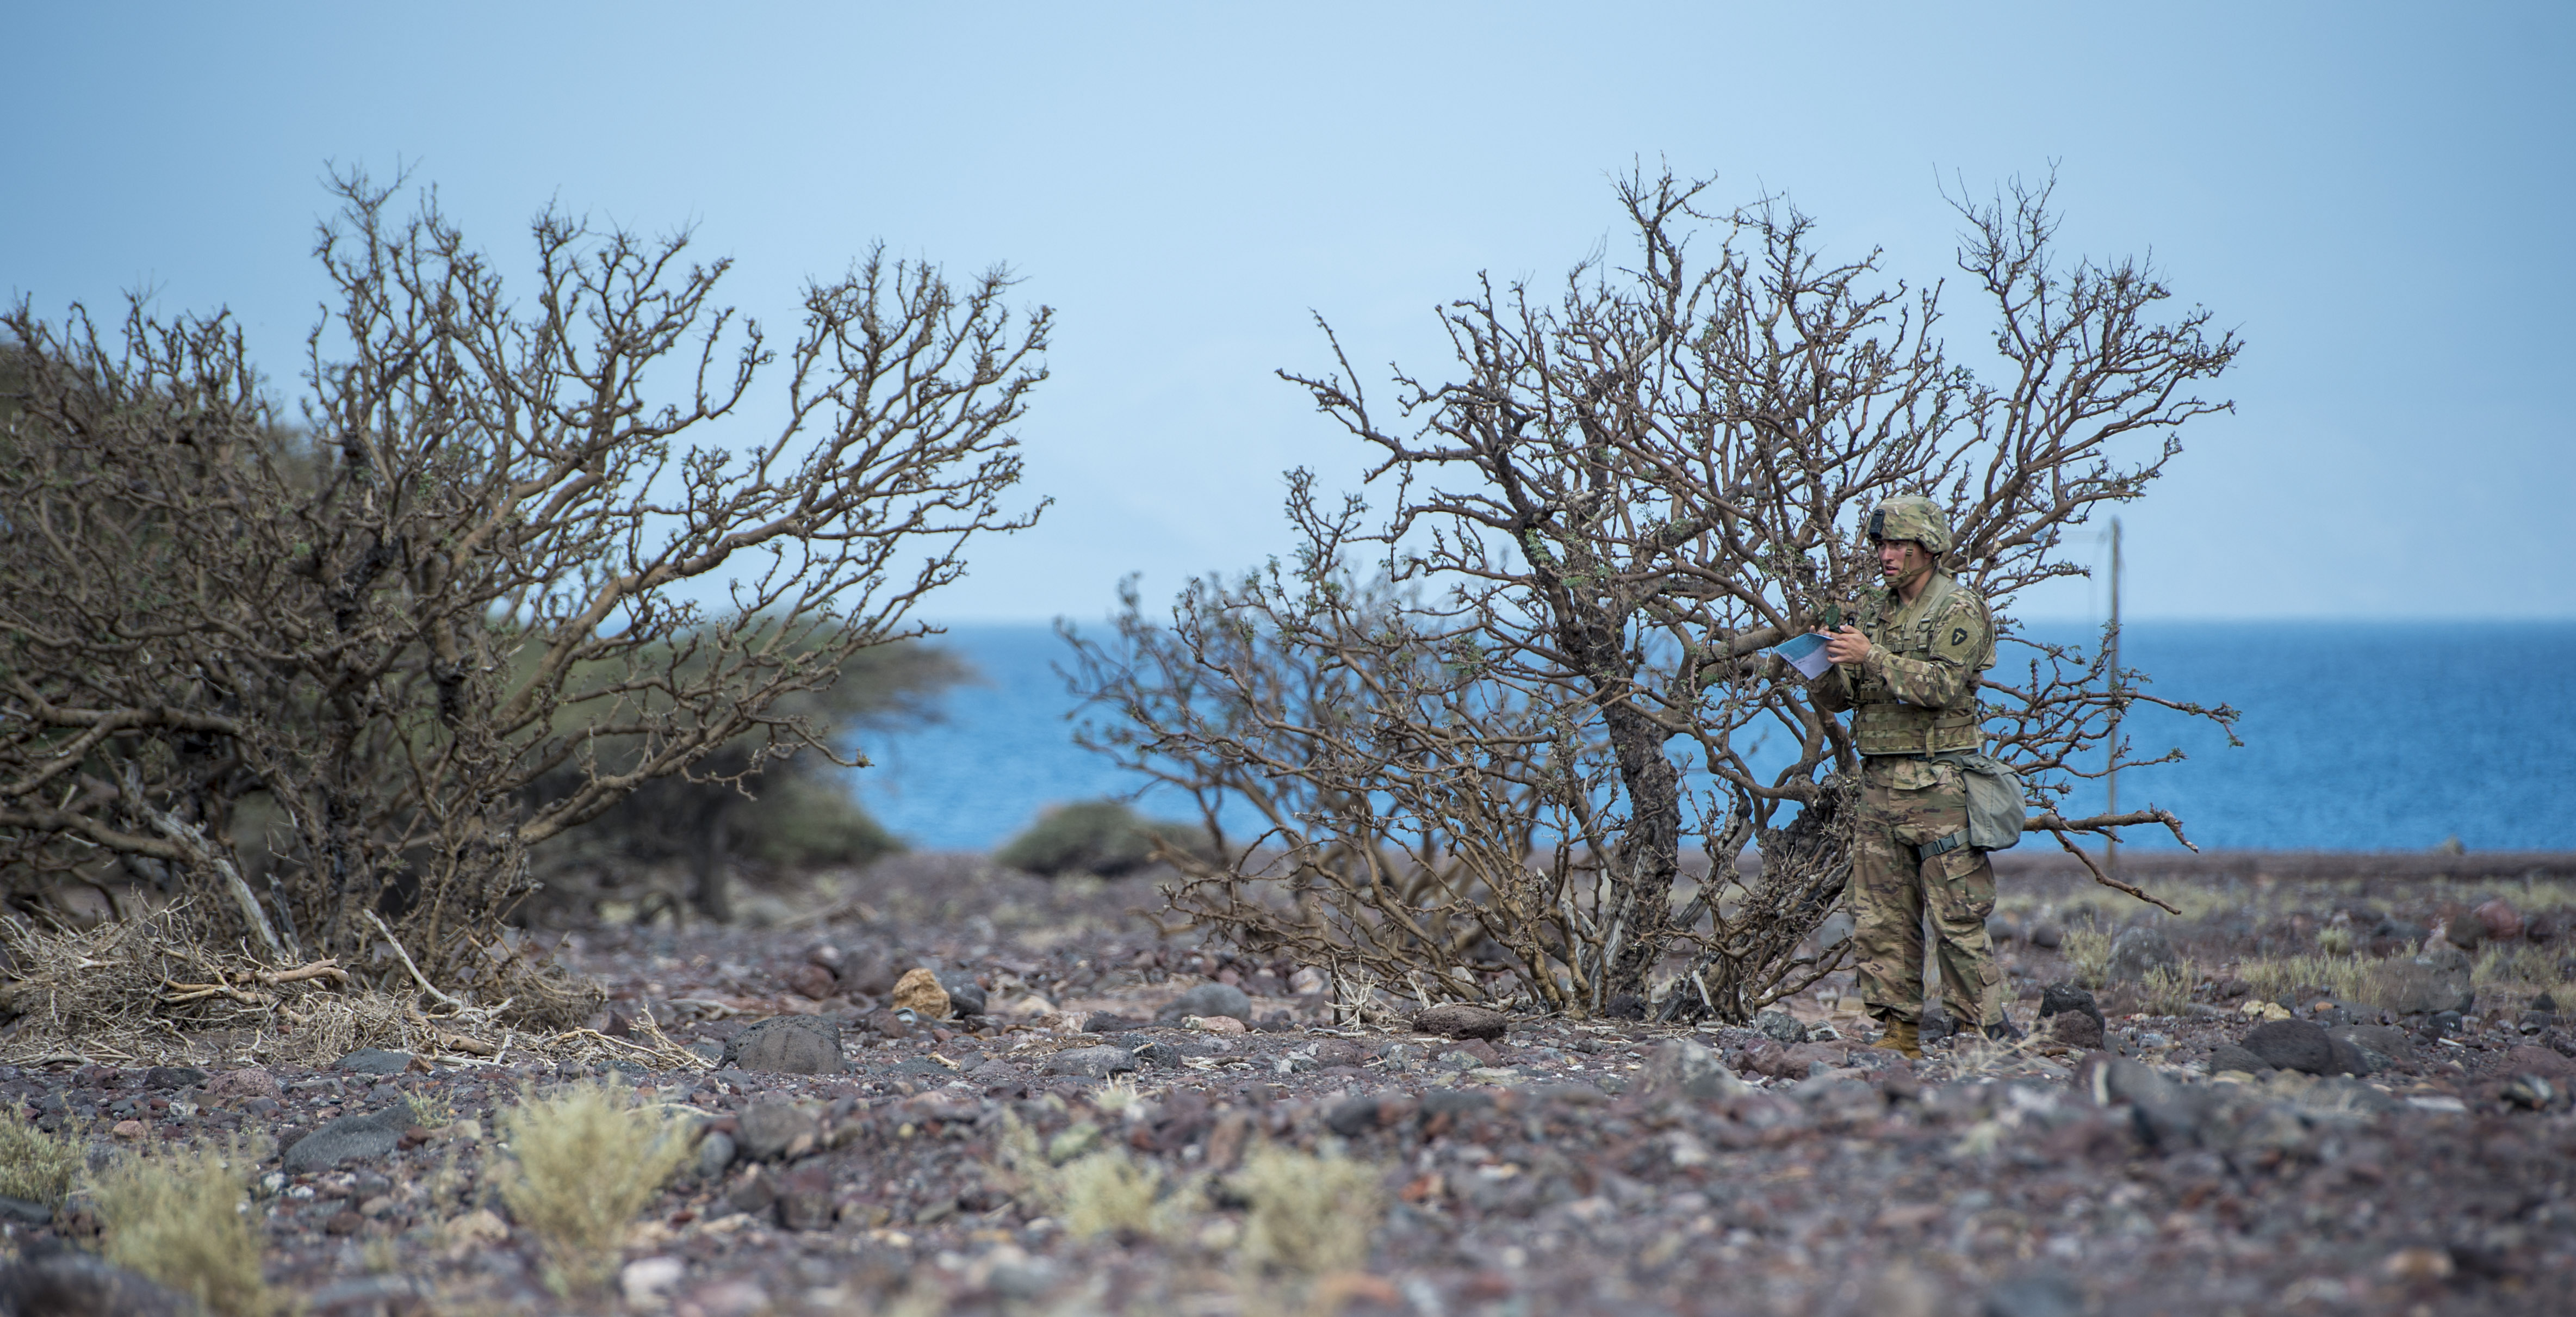 A U.S. Army Soldier assigned to Combined Joint Task Force - Horn of Africa uses a compass to locate a grid point during land navigation training in preparation for an Expert Infantryman Badge evaluation at Arta Range, Djibouti, Jan. 25, 2018. After two weeks of training and five days of testing, 50 Soldiers completed the process to earn the coveted special skills badge that requires Soldiers to perform an Army Physical Fitness Test, day and night land navigation, a 12-mile forced march, and 30 individual tasks covering weapons, medical, and security patrol skills. (U.S. Air Force photo by Staff Sgt. Timothy Moore)